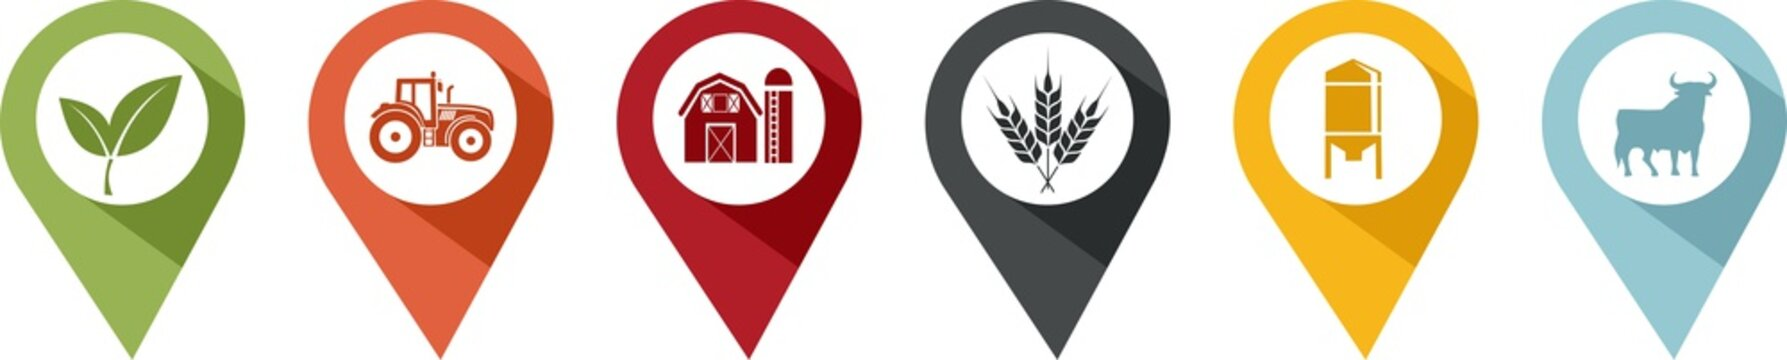 pin of various symbols of agriculture